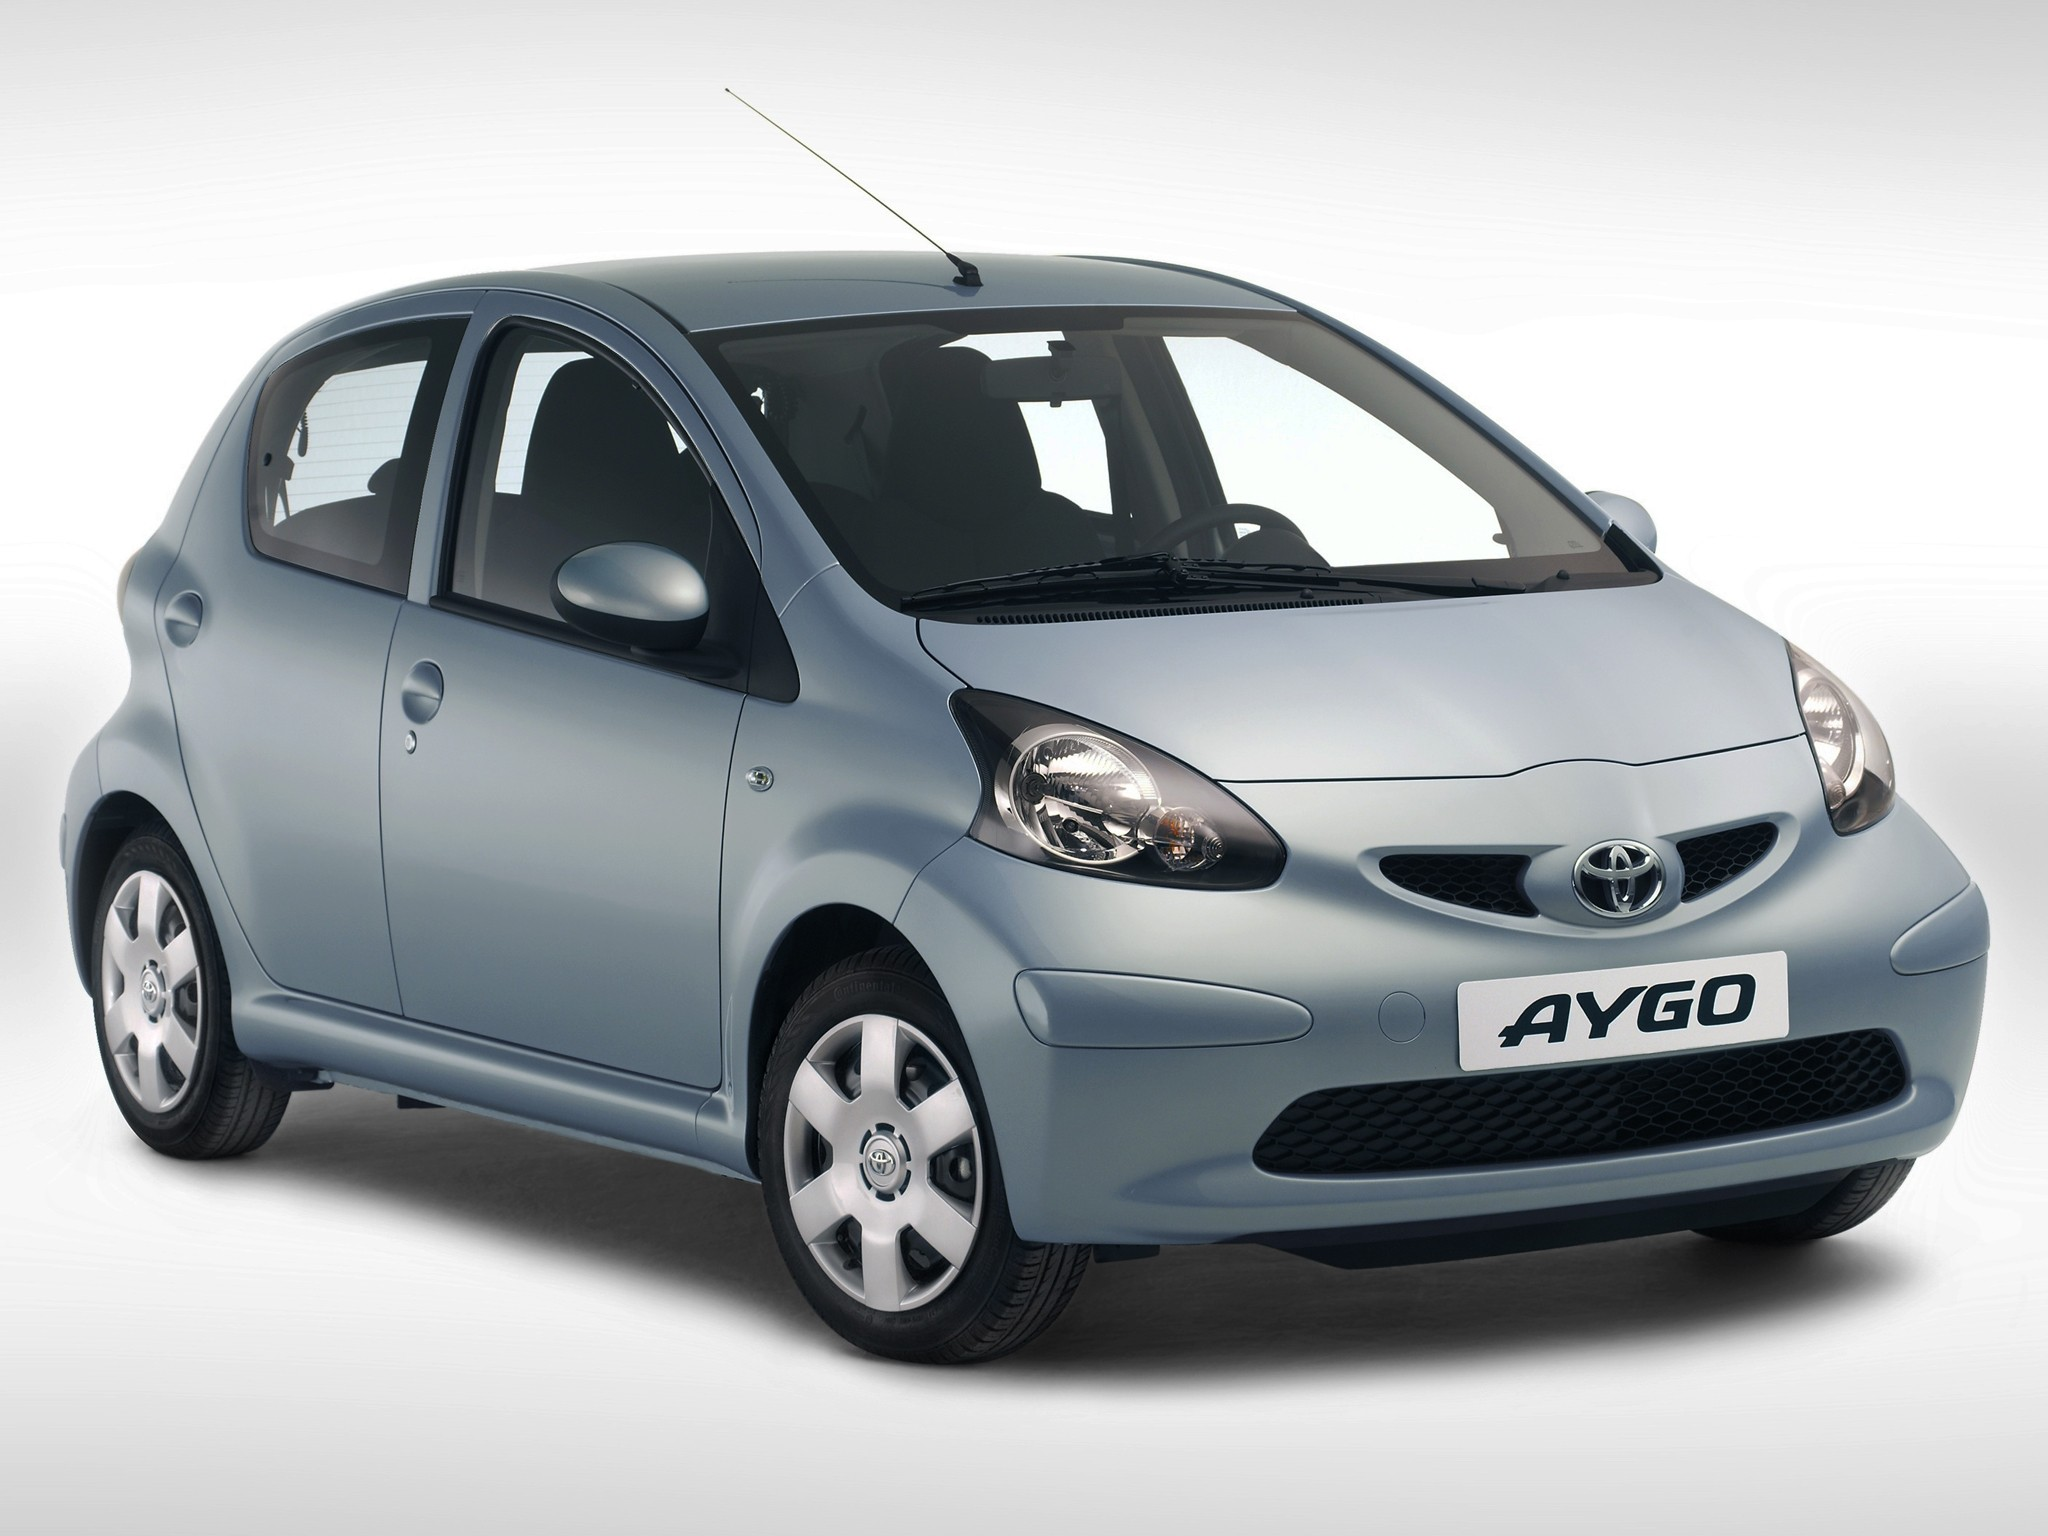 toyota aygo 5 doors specs 2005 2006 2007 2008 autoevolution. Black Bedroom Furniture Sets. Home Design Ideas